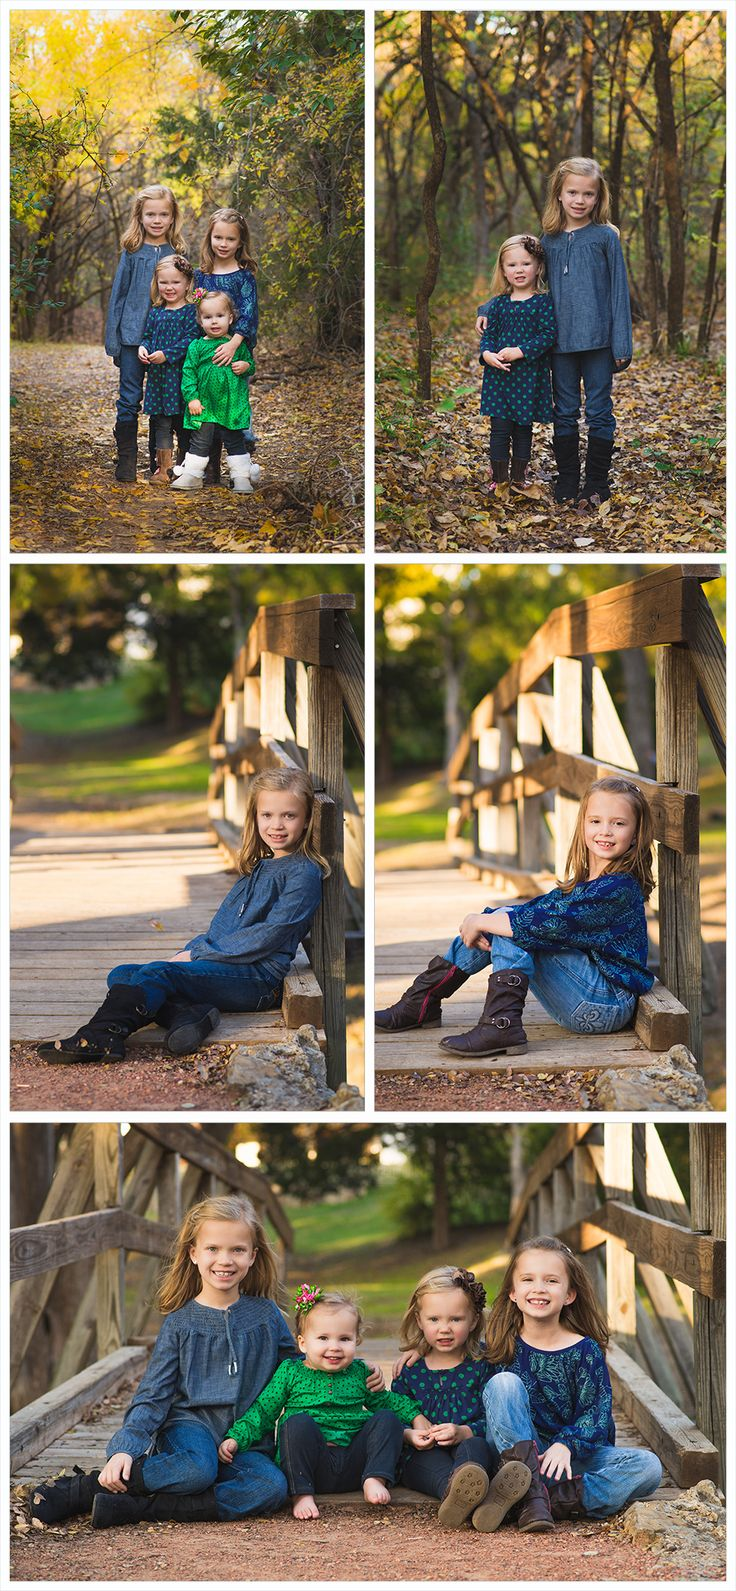 family portrait ideas, family picture poses, pose, family session, beautiful, pretty, professional, fall, baby sister, woods, sibling, sisters, bridge, girl family, family picture ideas for clothes, outfits, blue and green theme